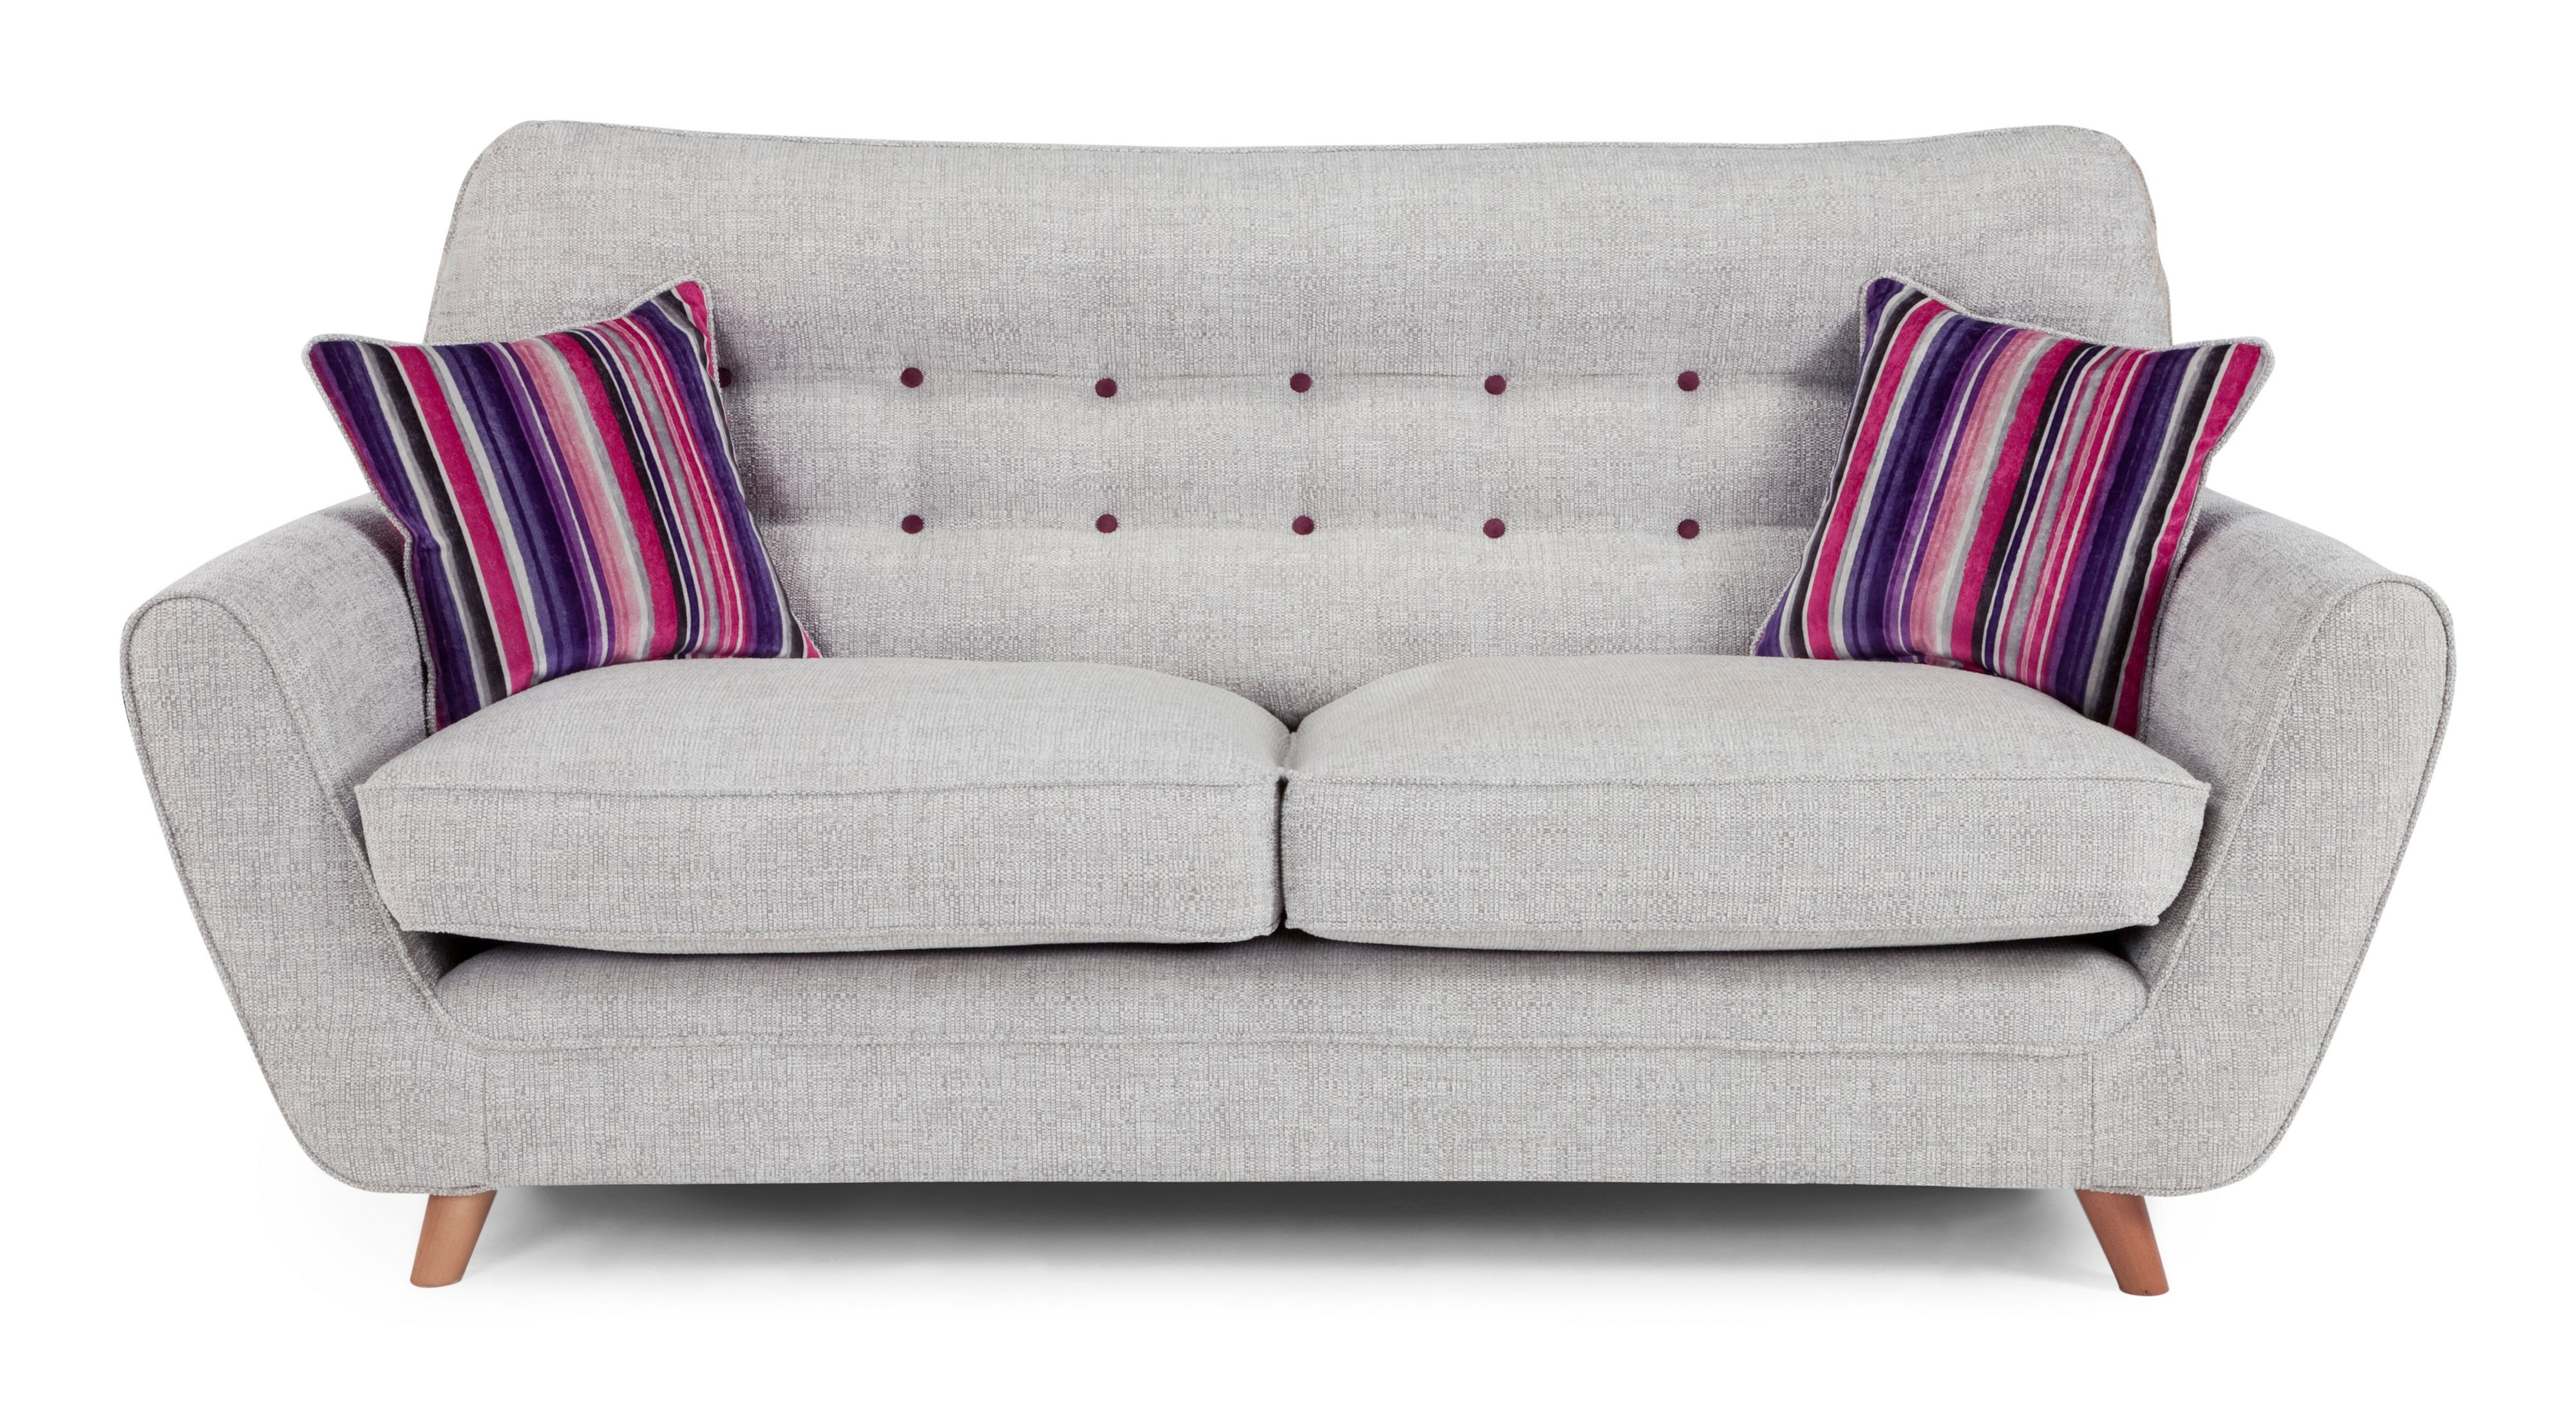 Sofas Center Small Seater Sofa Uk Two Pinterest Stupendous Image Throughout Small 2 Seater Sofas (Image 12 of 15)